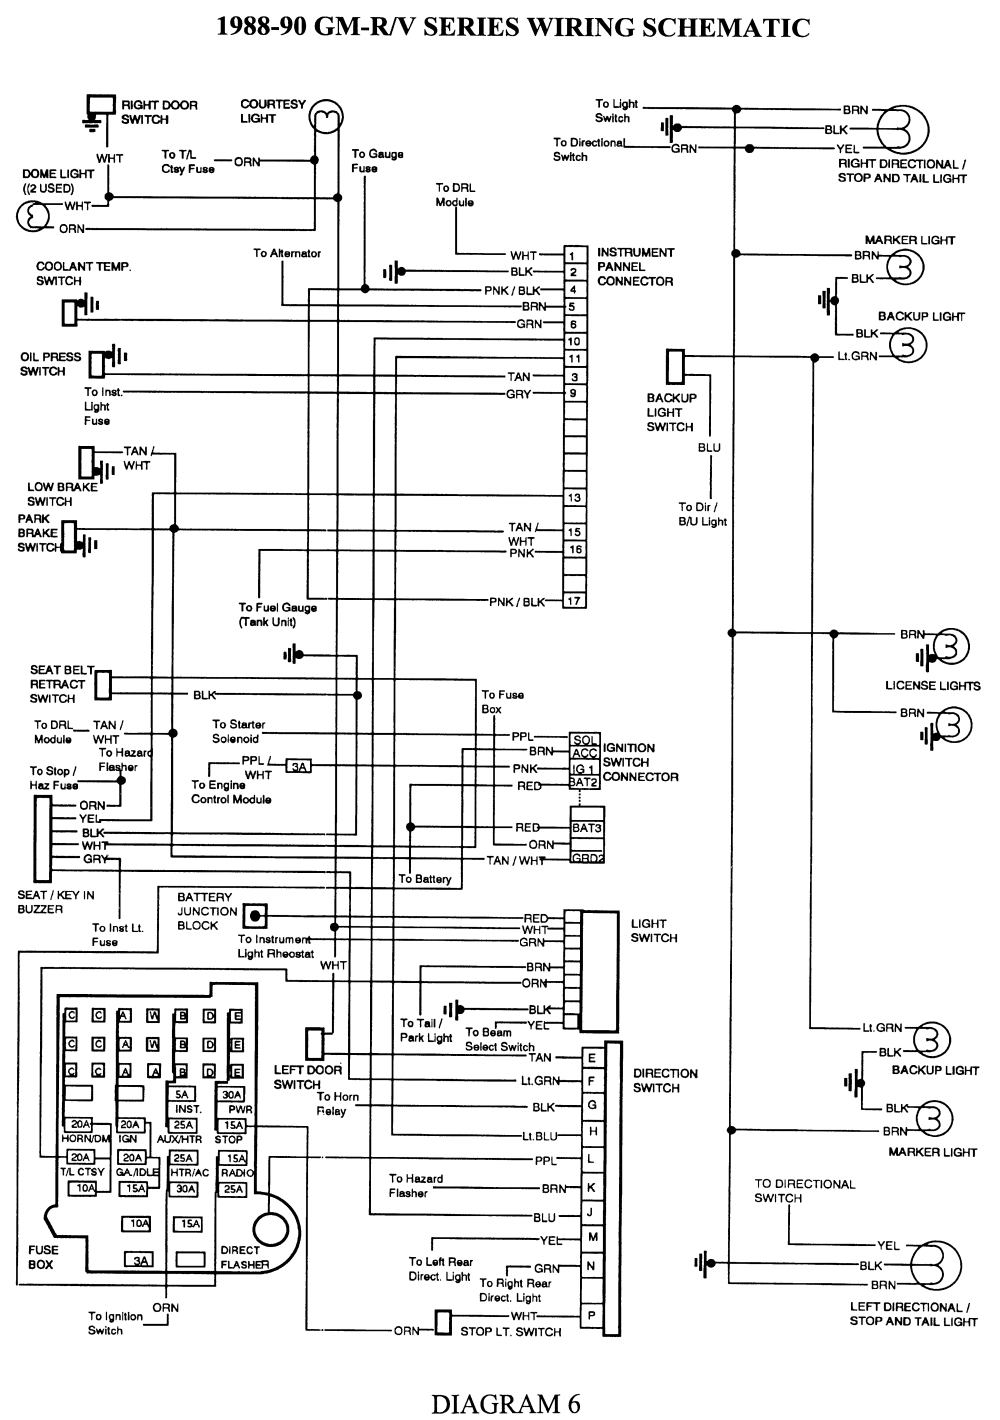 Chevy Suburban Wiring Diagram Chevy Suburban Wiring Wire Center U Rh Naiadesign Co Chevy Suburban Wiring Diagram B